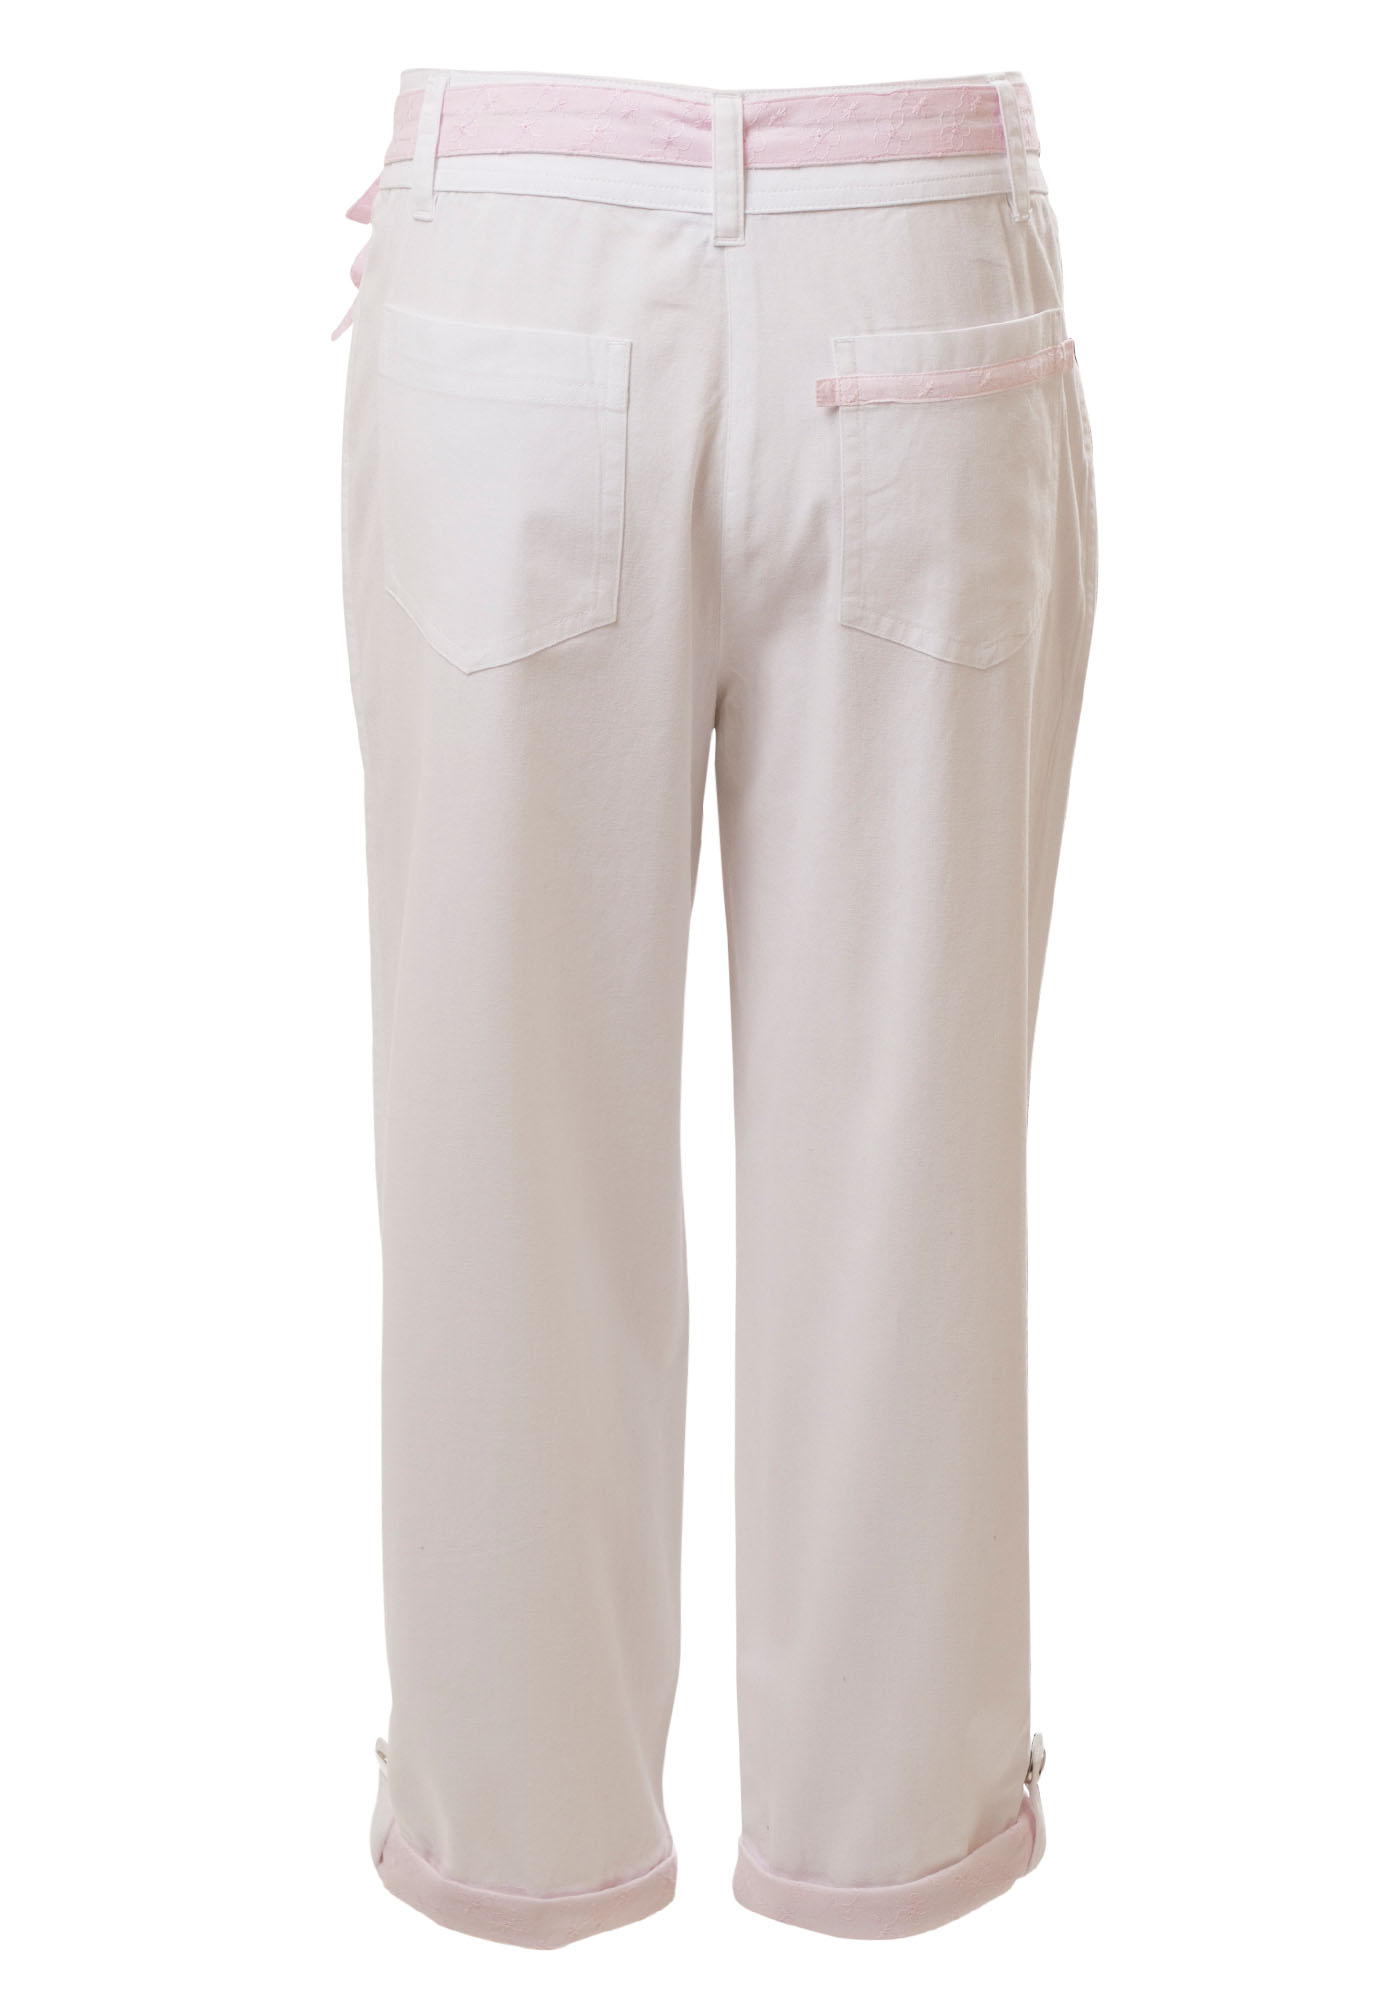 MINC Petite - Buy Pink Ice Girls Capris in White Cotton Twill Online